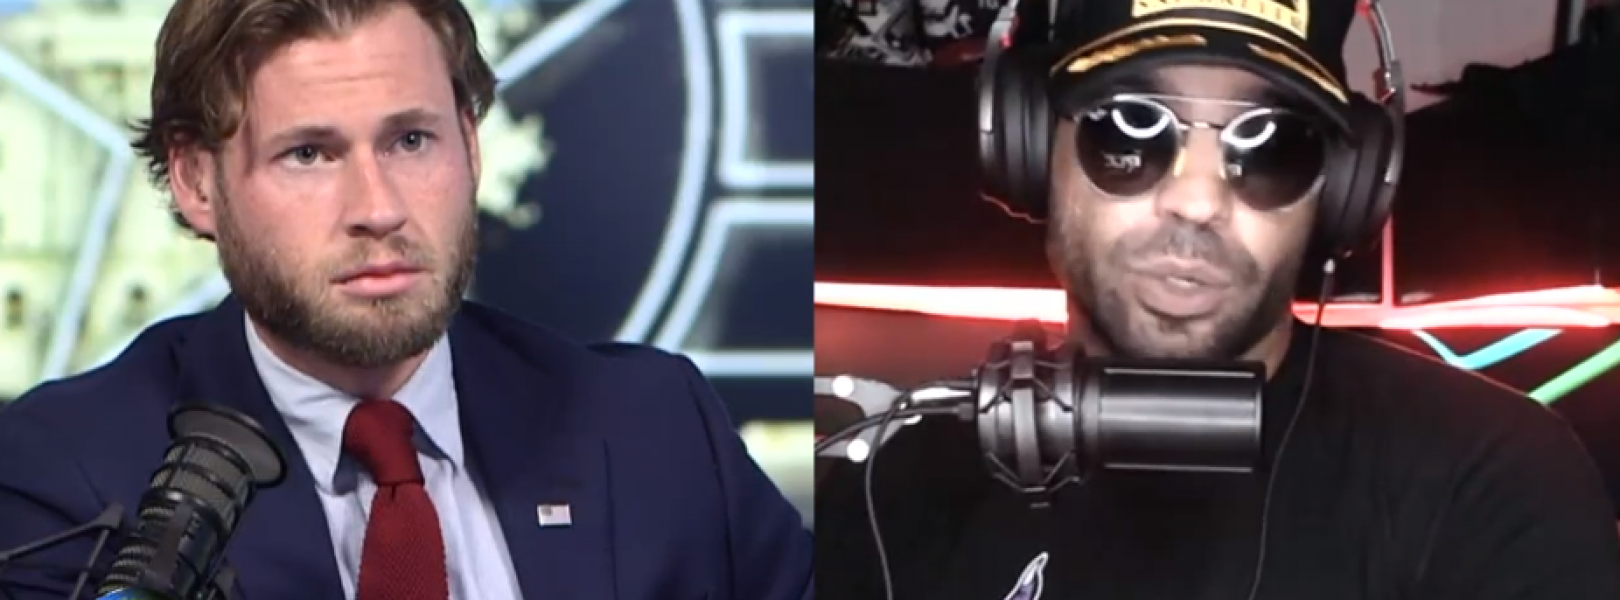 """Proud Boys chairman says after Trump's shoutout to the group, """"recruiting is through the roof"""""""